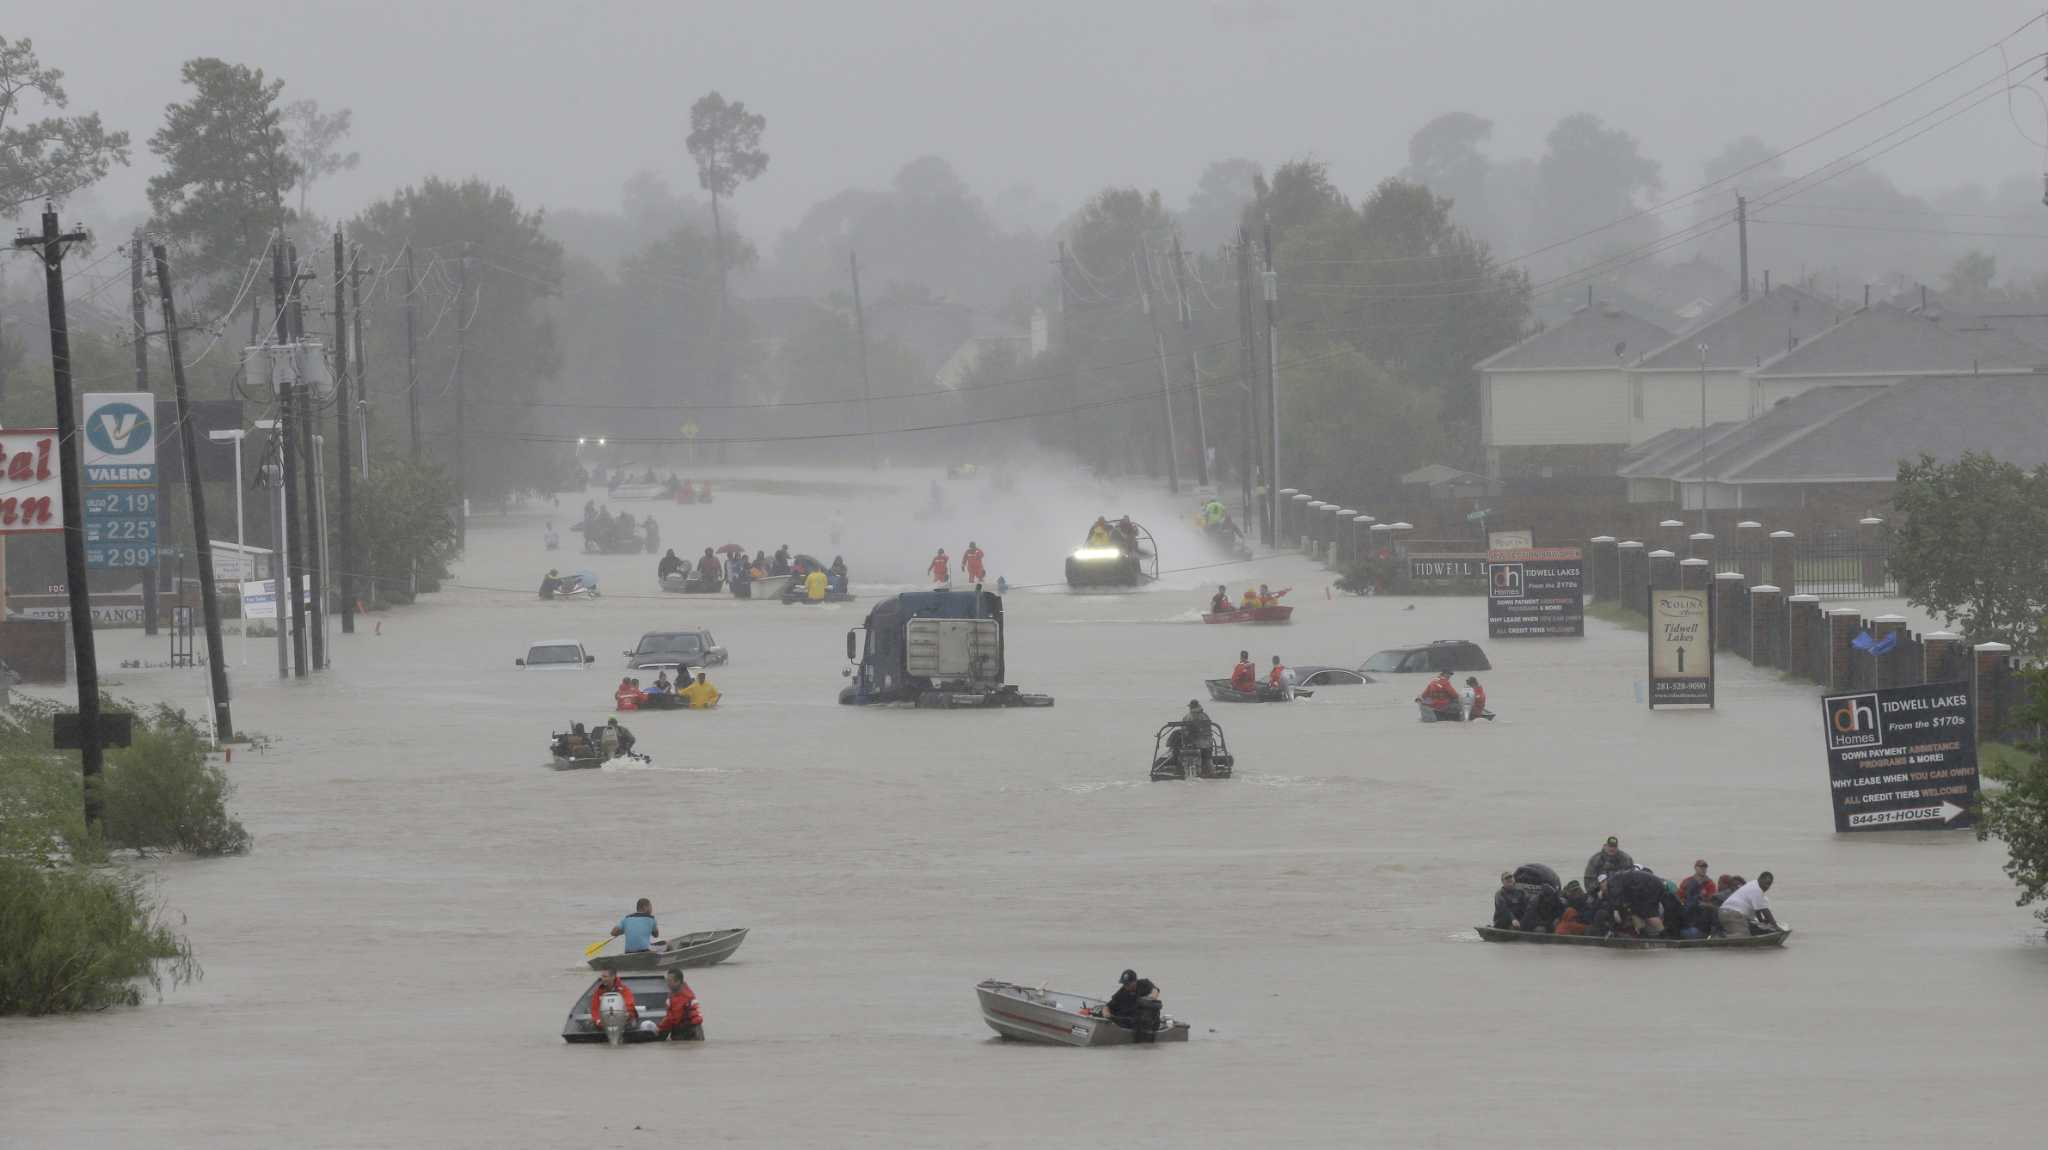 Don t blame sprawl for Houston s floods HoustonChronicle